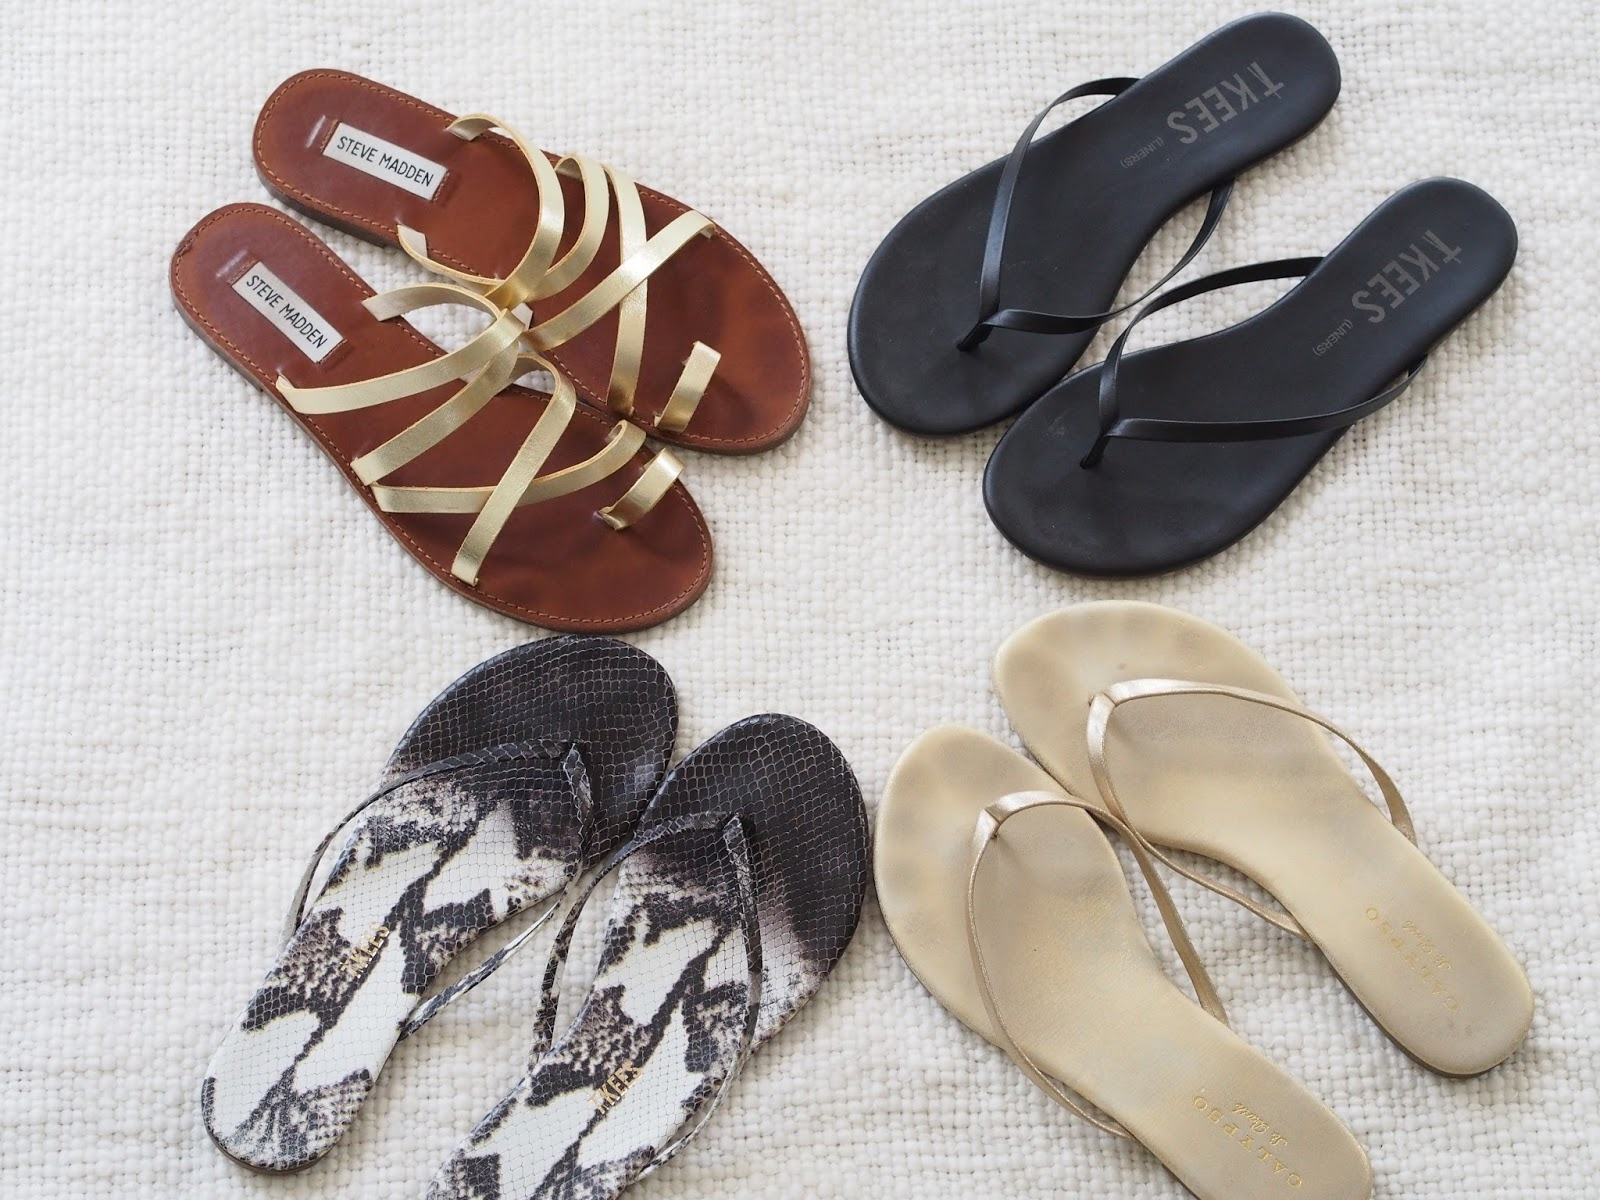 7b7e4edc1574 Typical Domestic Babe  For The Love Of Flat Sandals